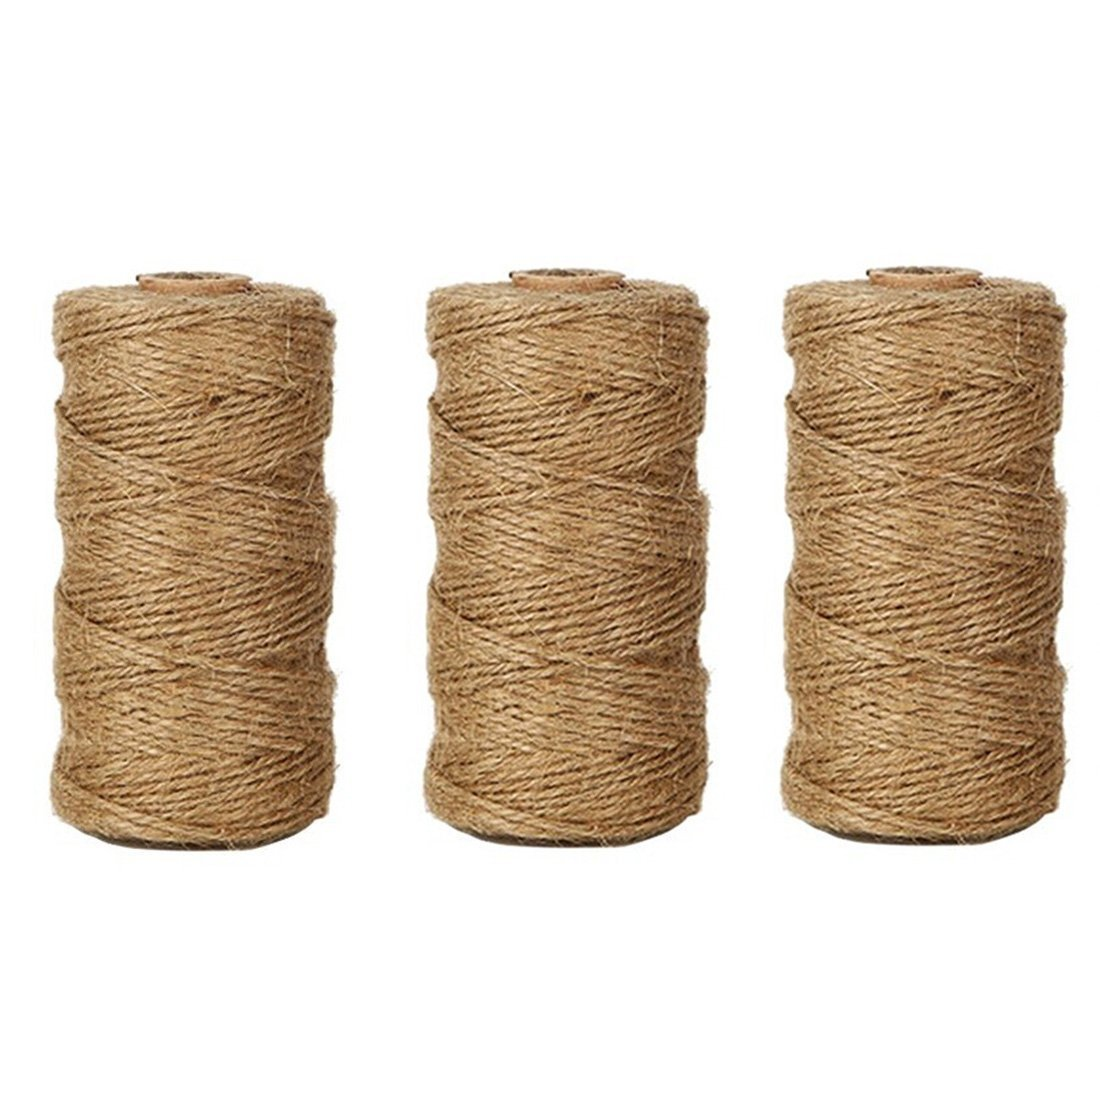 3 PcsX328 Feet Natural Jute Twine Arts Crafts Christmas Gift Twine Packing String